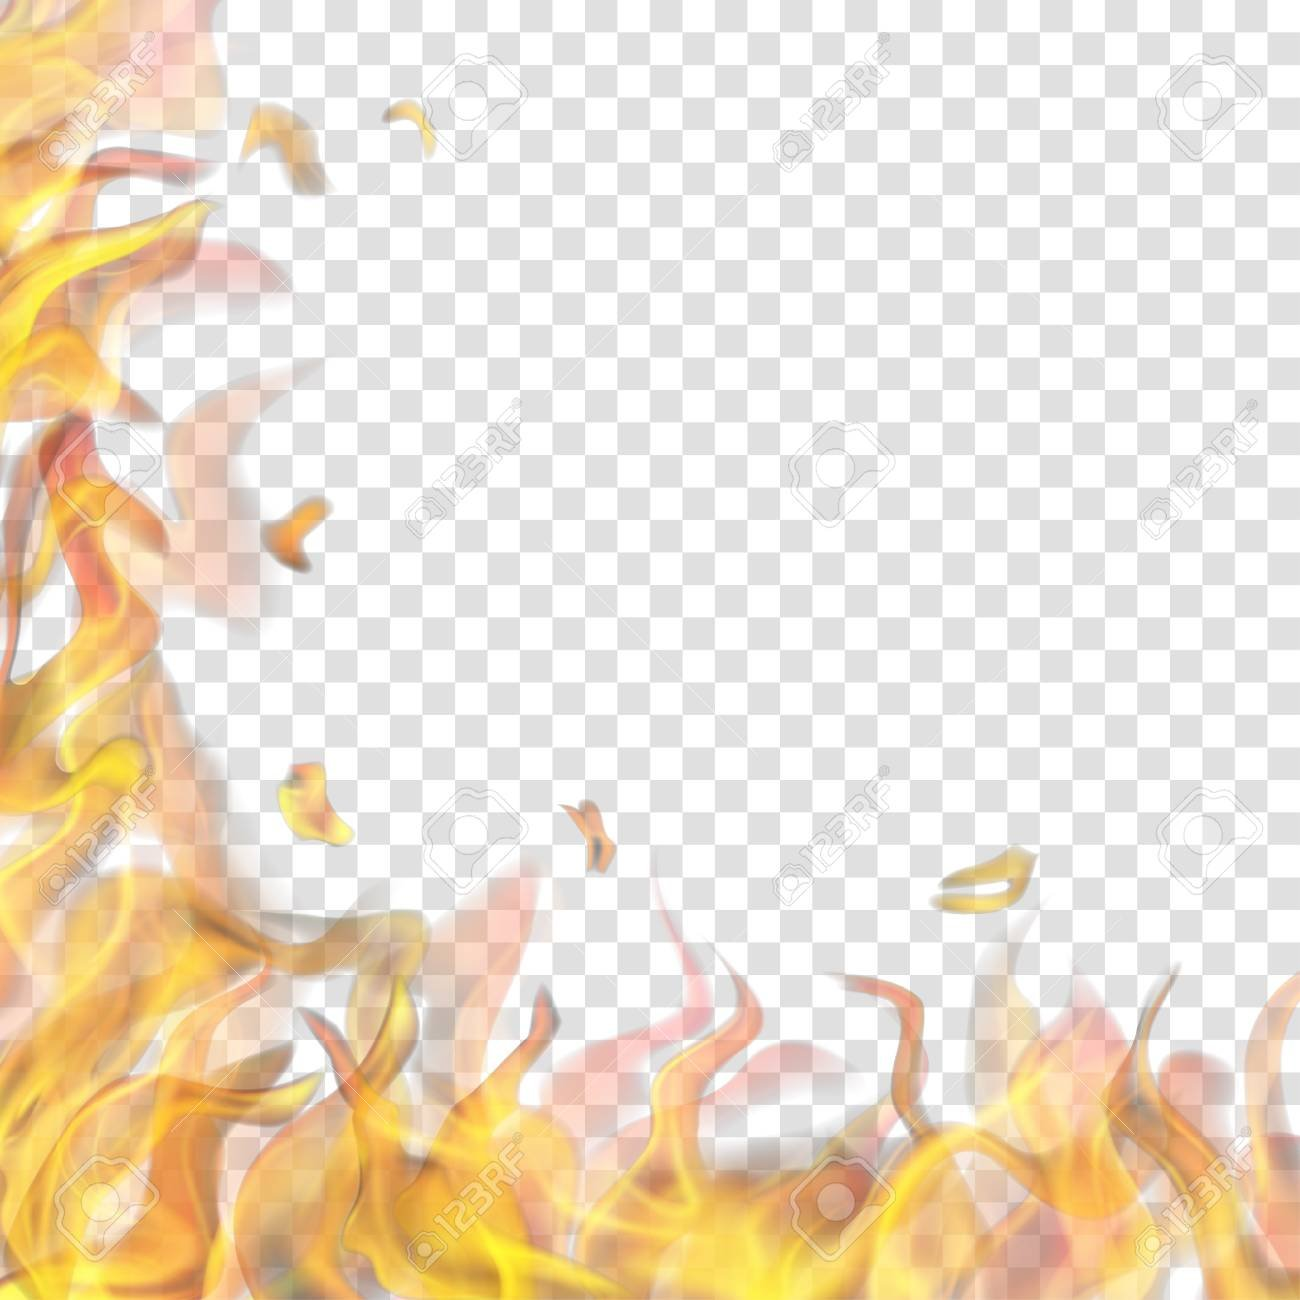 Translucent Fire Flame On Left And Below On Transparent Background 1300x1300